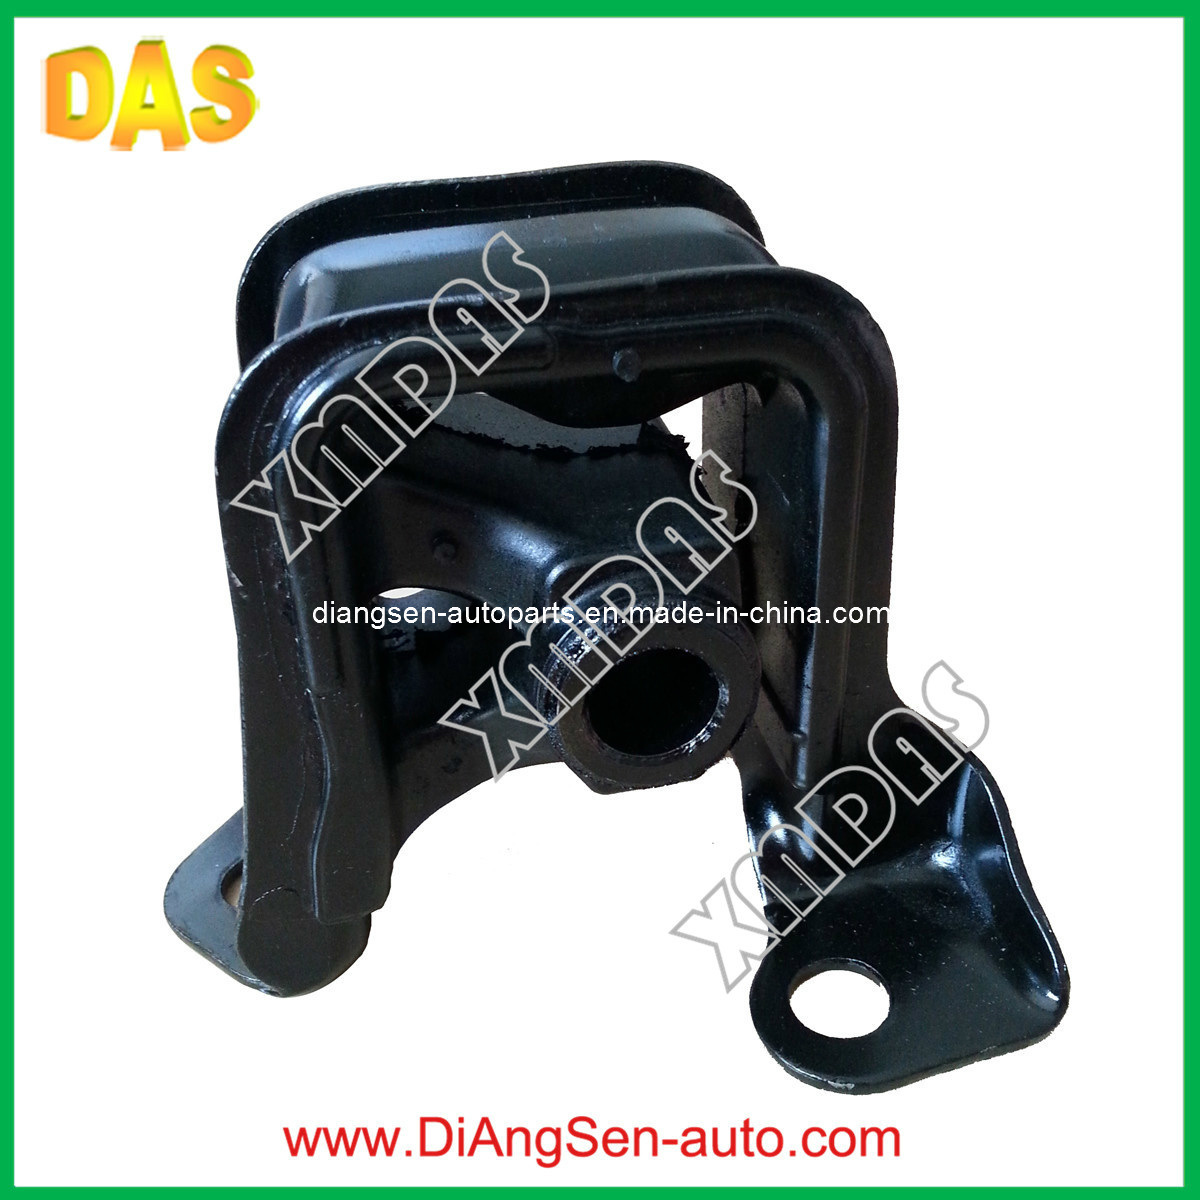 China Oem Auto Parts Manufacturer Engine Mounting For Honda Accord 2004 Crv Discount Factory And 50840 Sv4 000 Mount